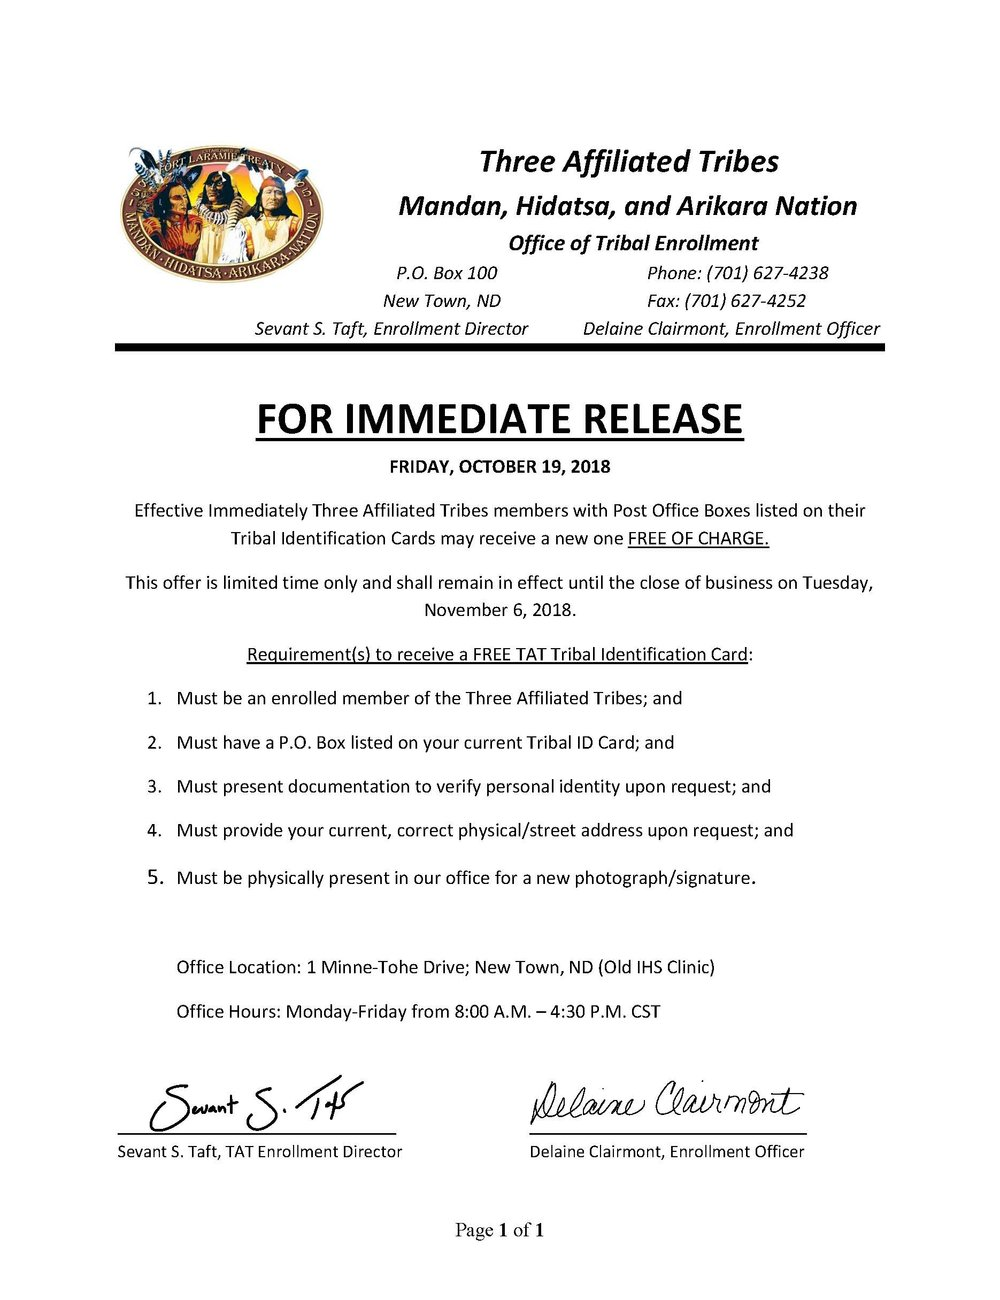 FREE TRIBAL ID CARDS NOTICE - Oct 2018.jpg